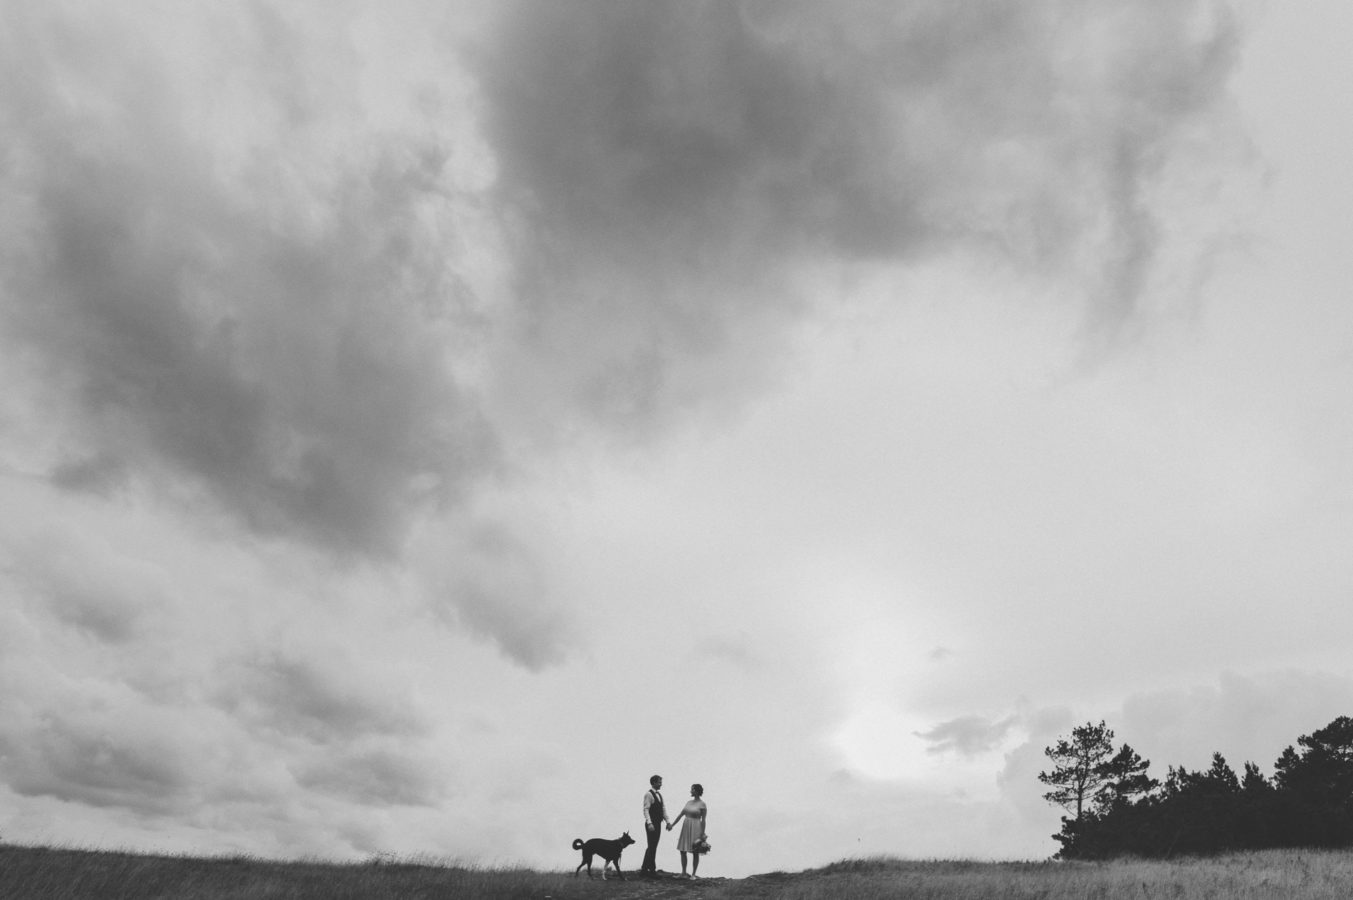 bride and groom and their dog standing on a grassy field with a big stormy sky above them